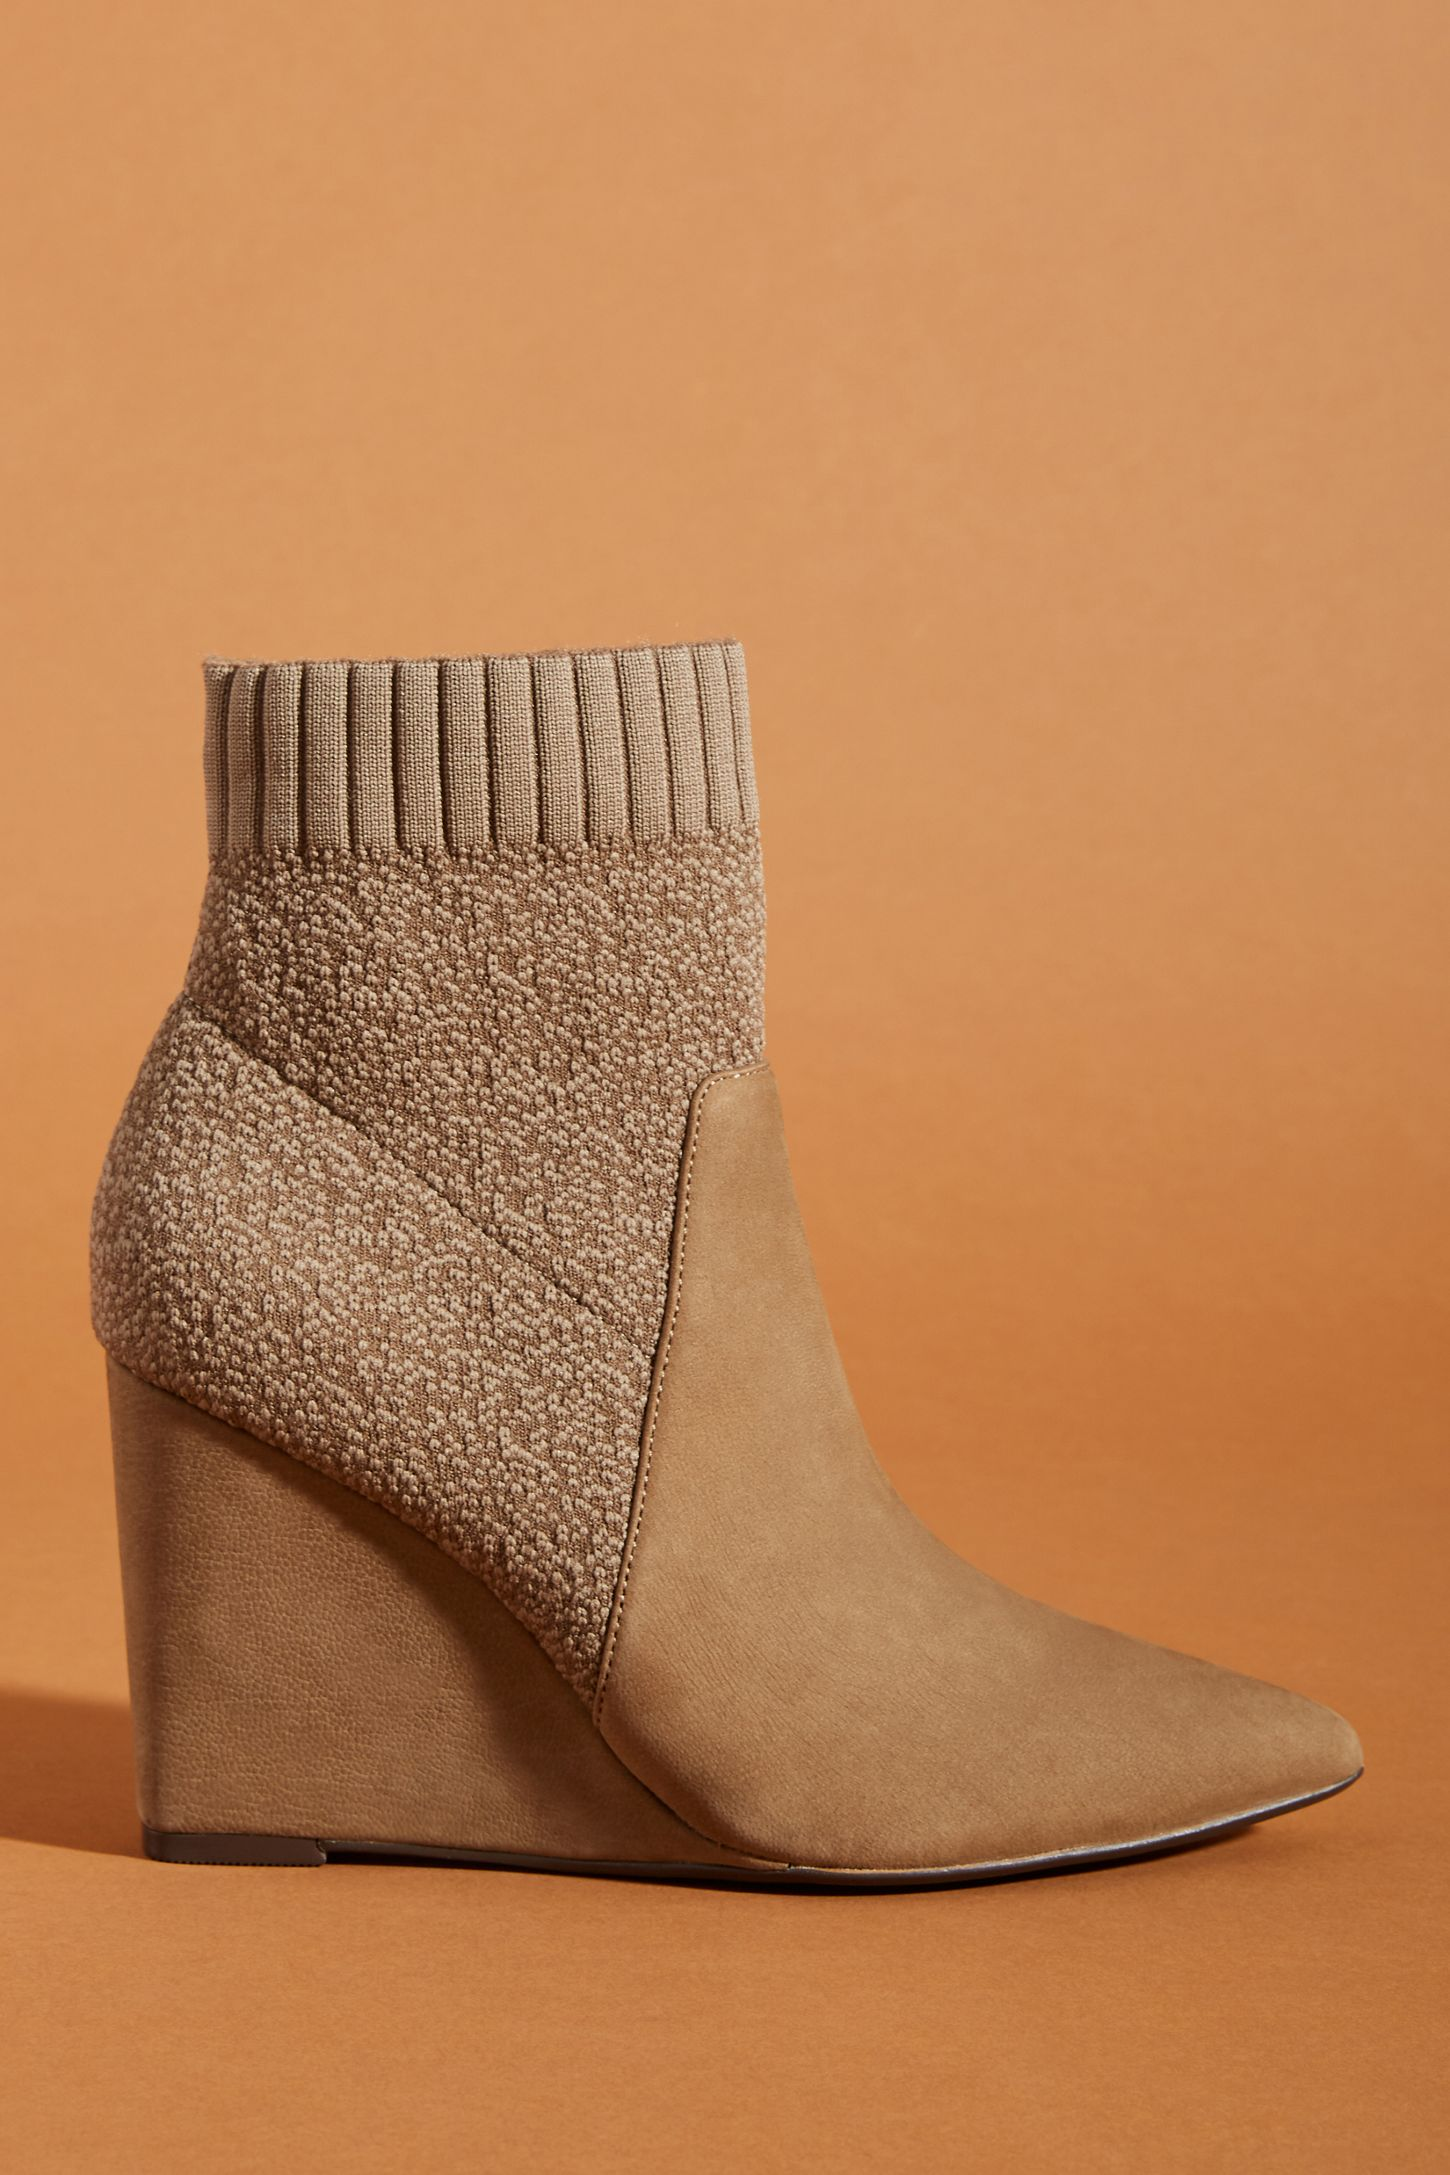 2a45a870e02 Cecelia New York Renata Sock Booties